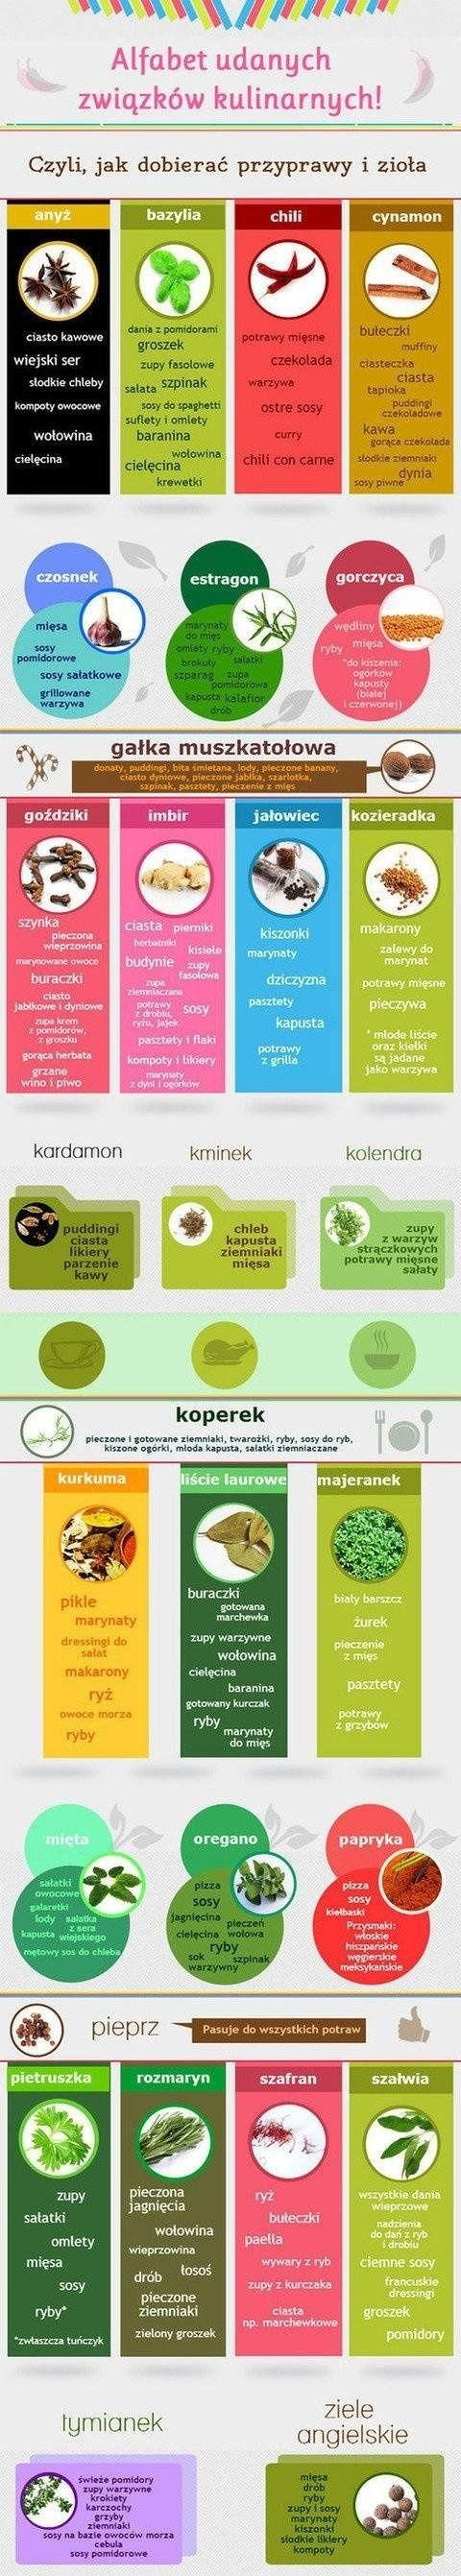 Alphabet successful culinary associations #cooking #body #health #people #culinary #tips #interesting